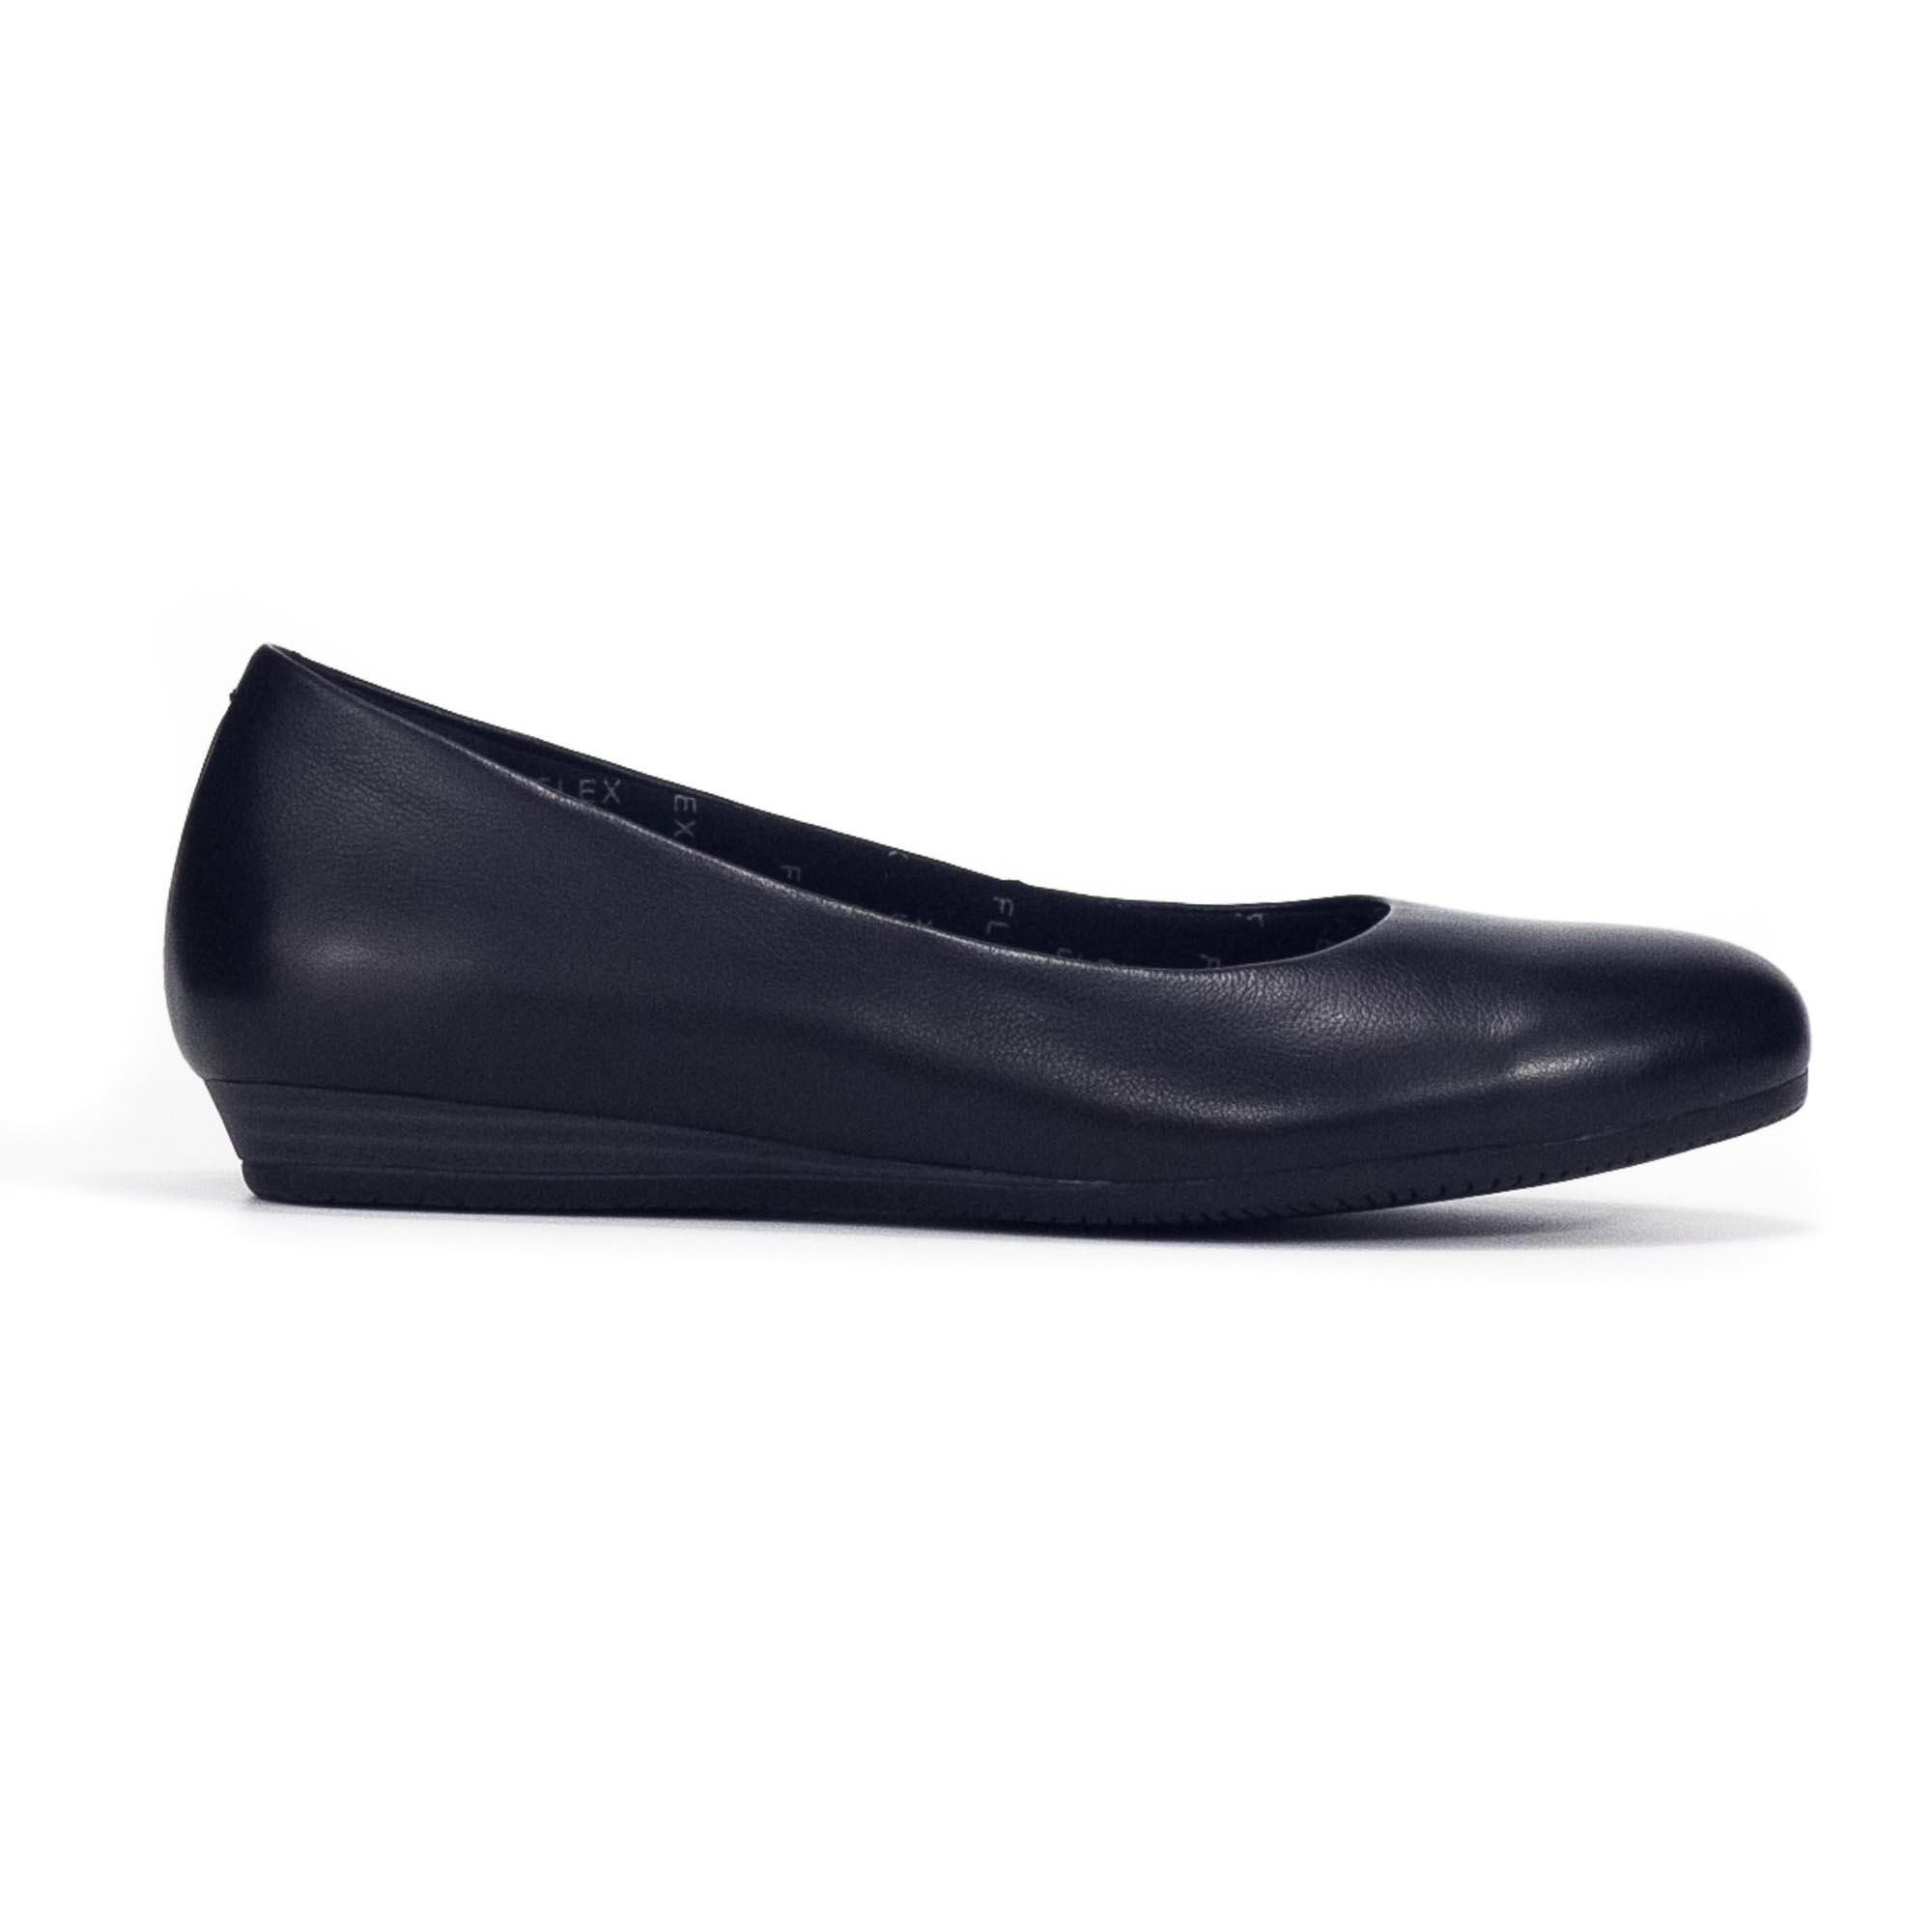 Buy Bata Ladies Heels Black 6146825 Singapore